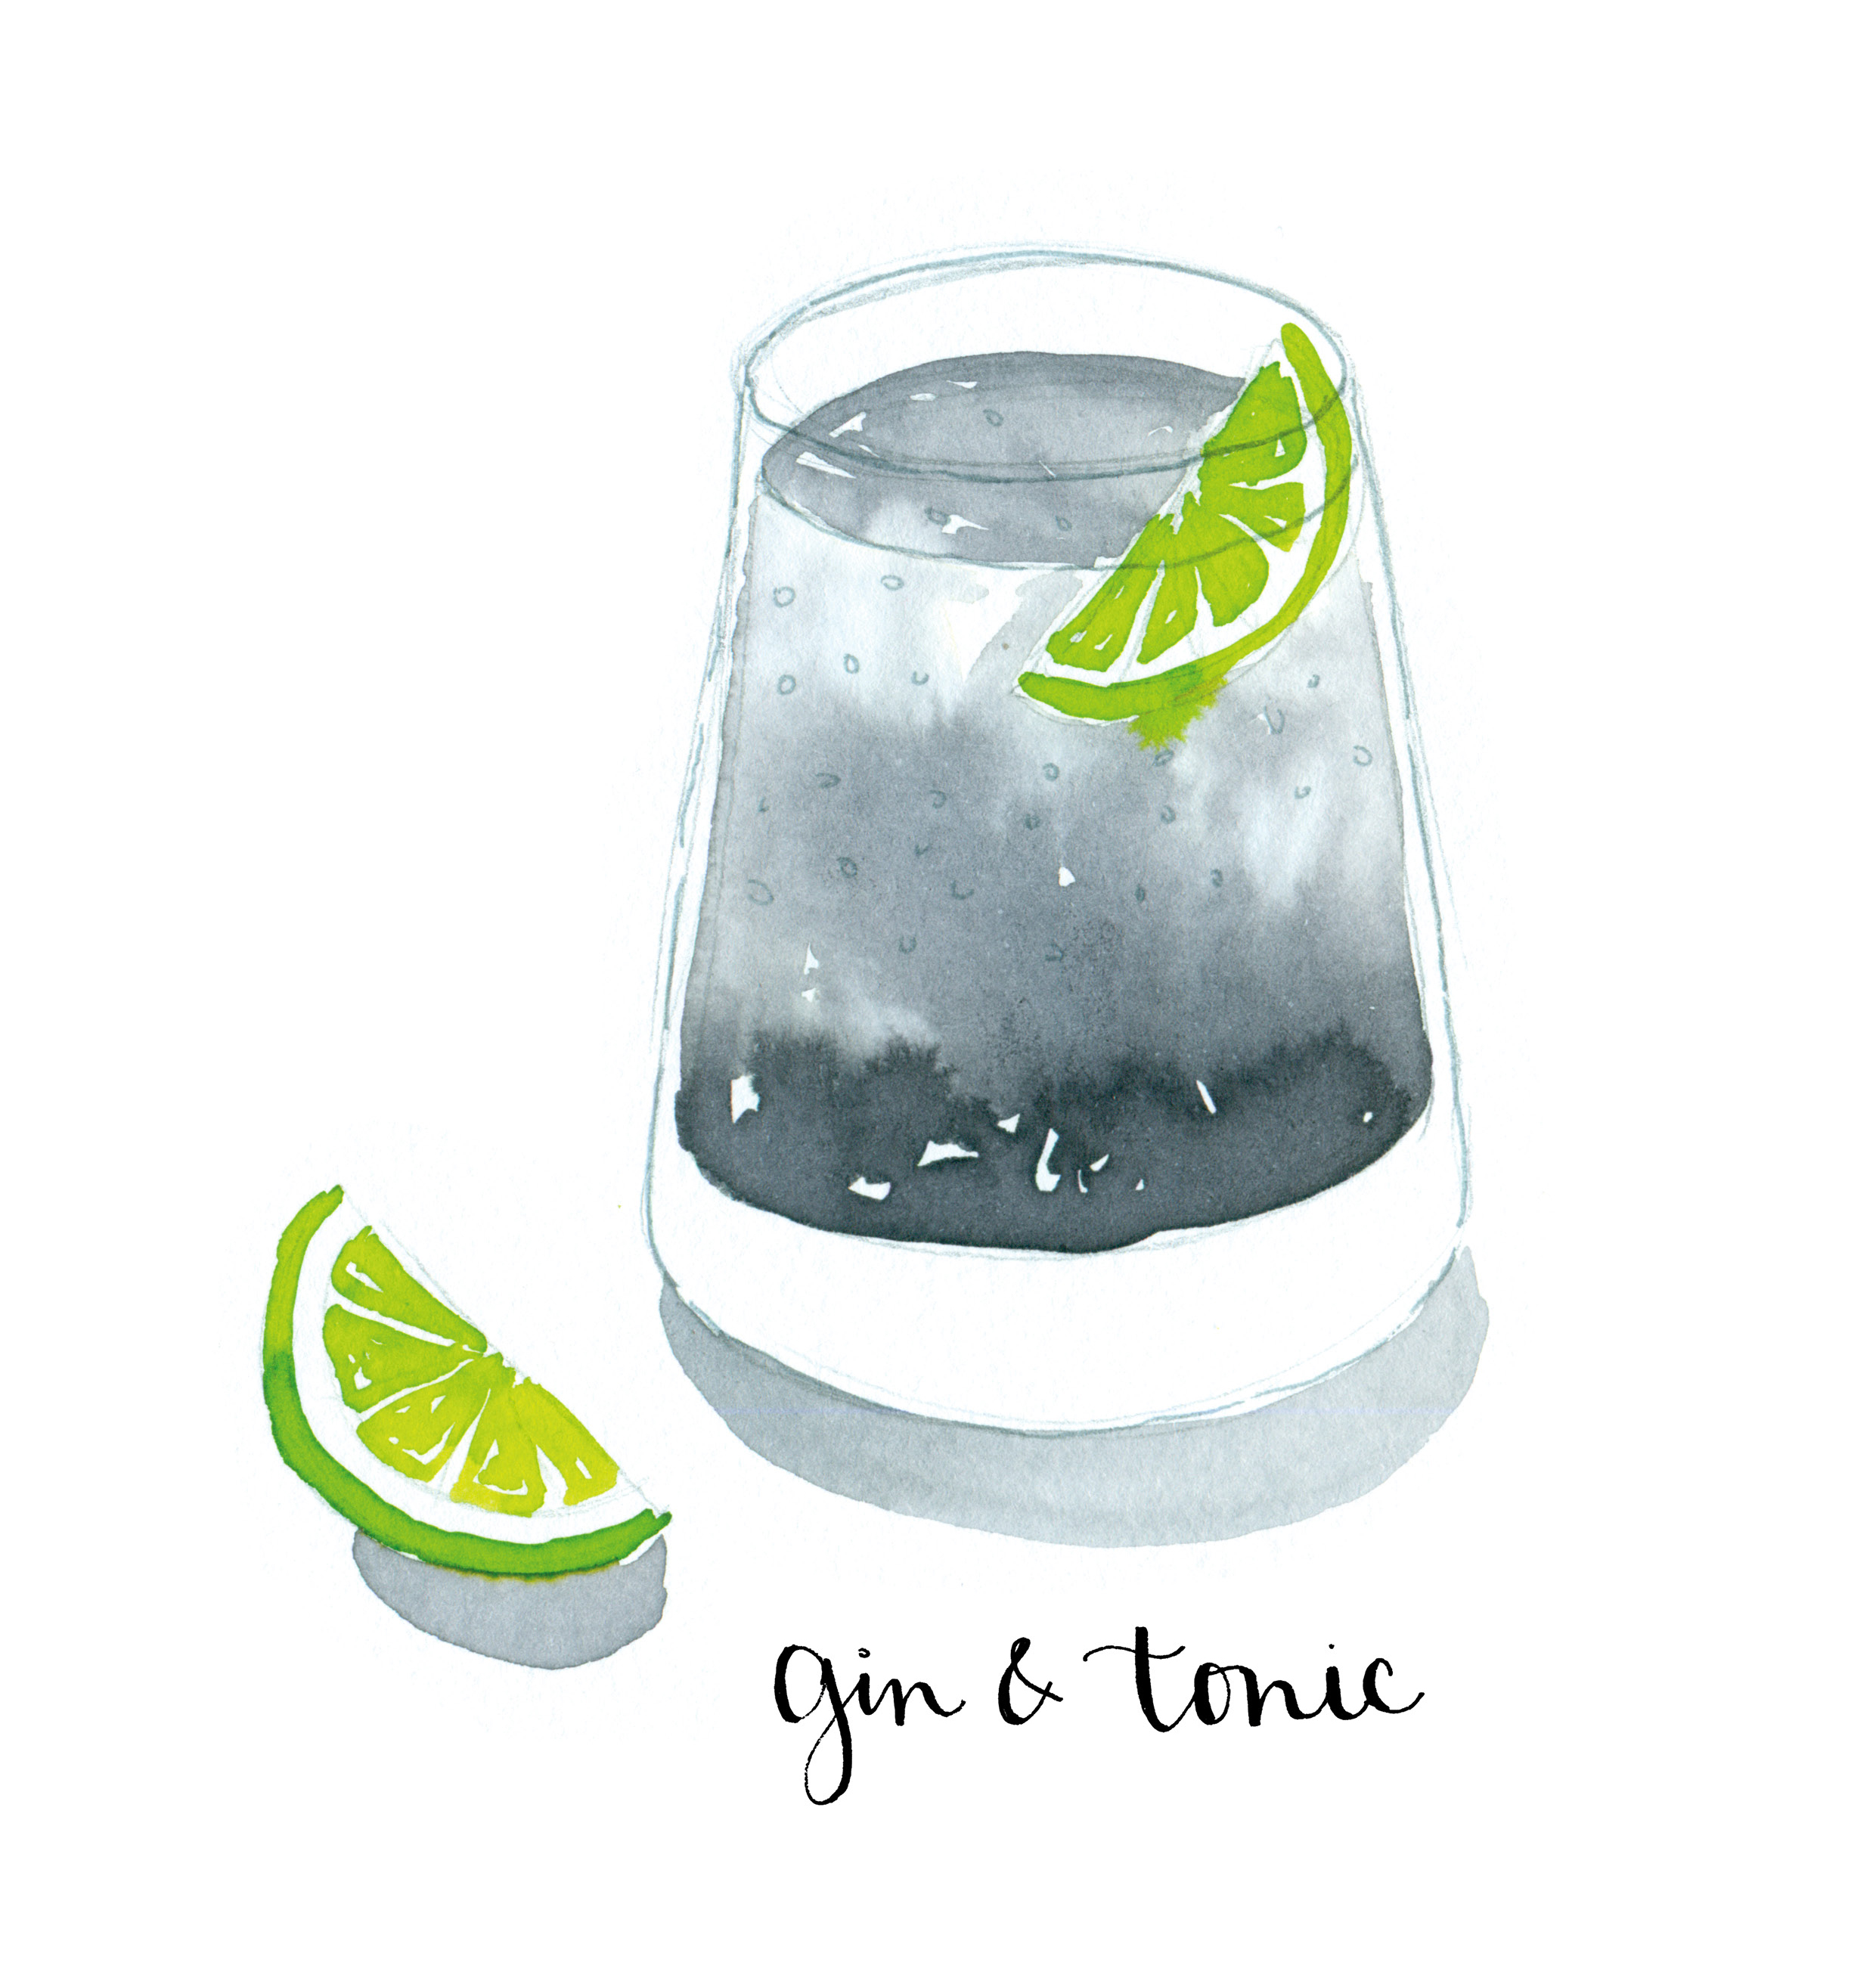 Drawn cocktail And Google tonic illustrative and